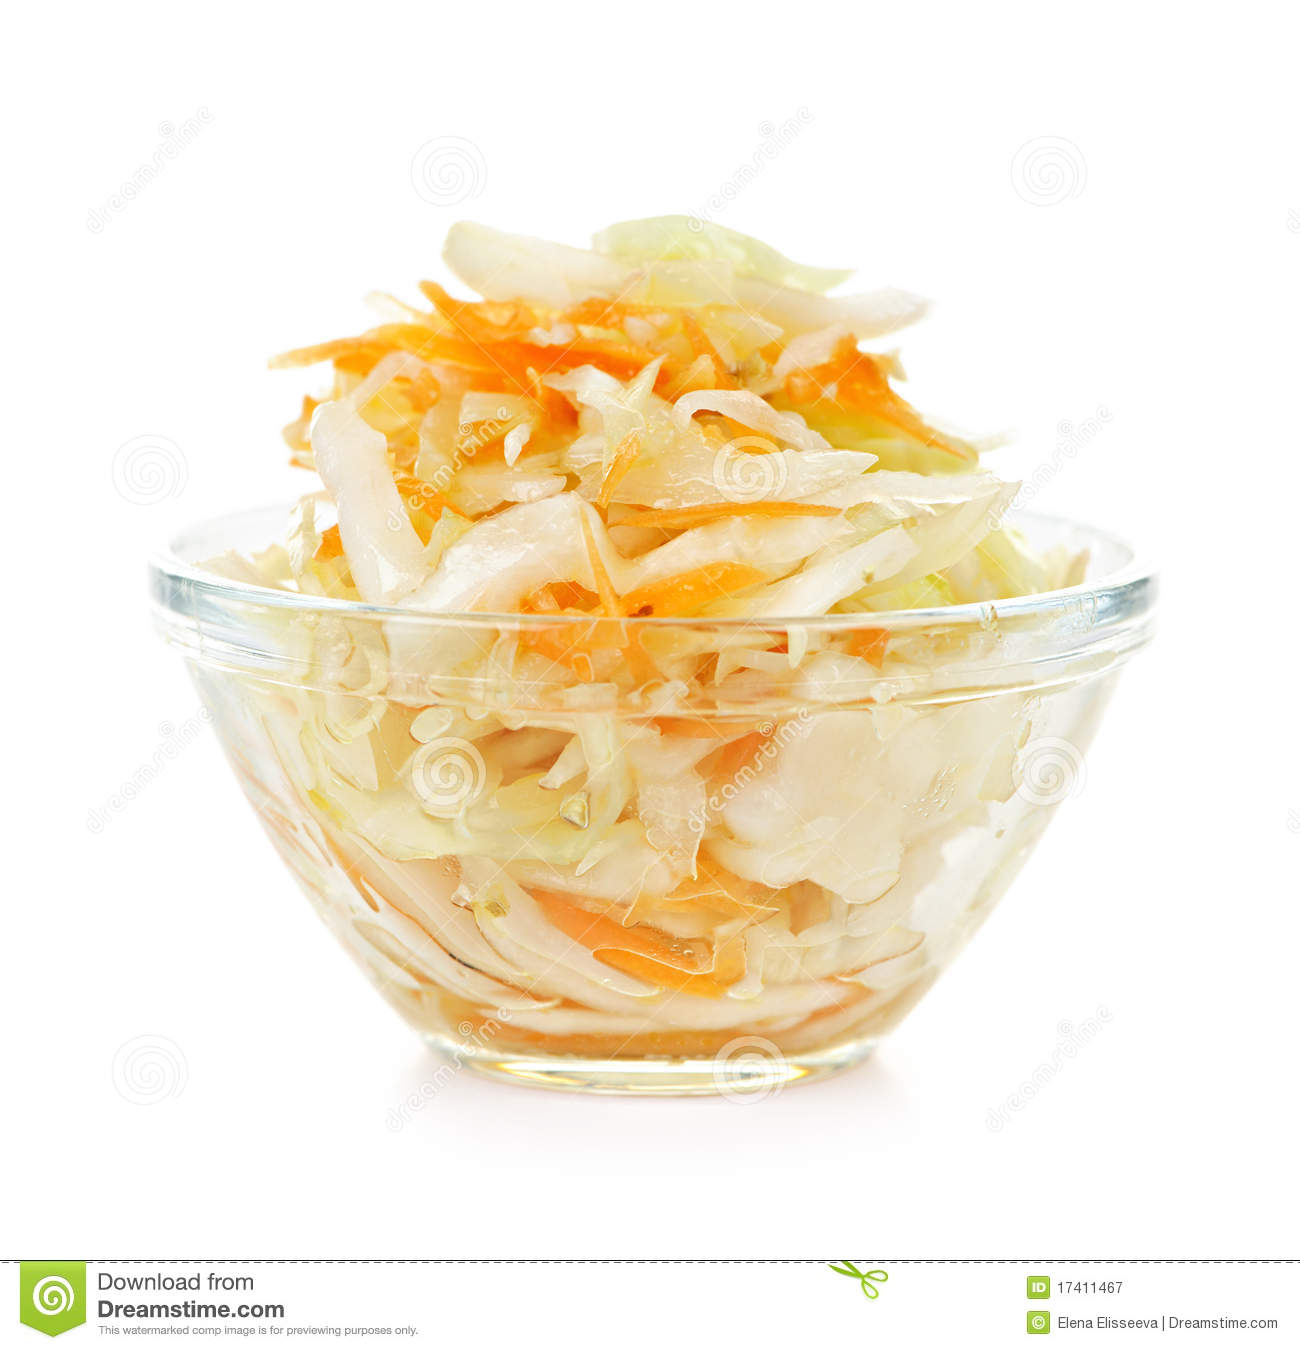 pictures How to Shred Carrots